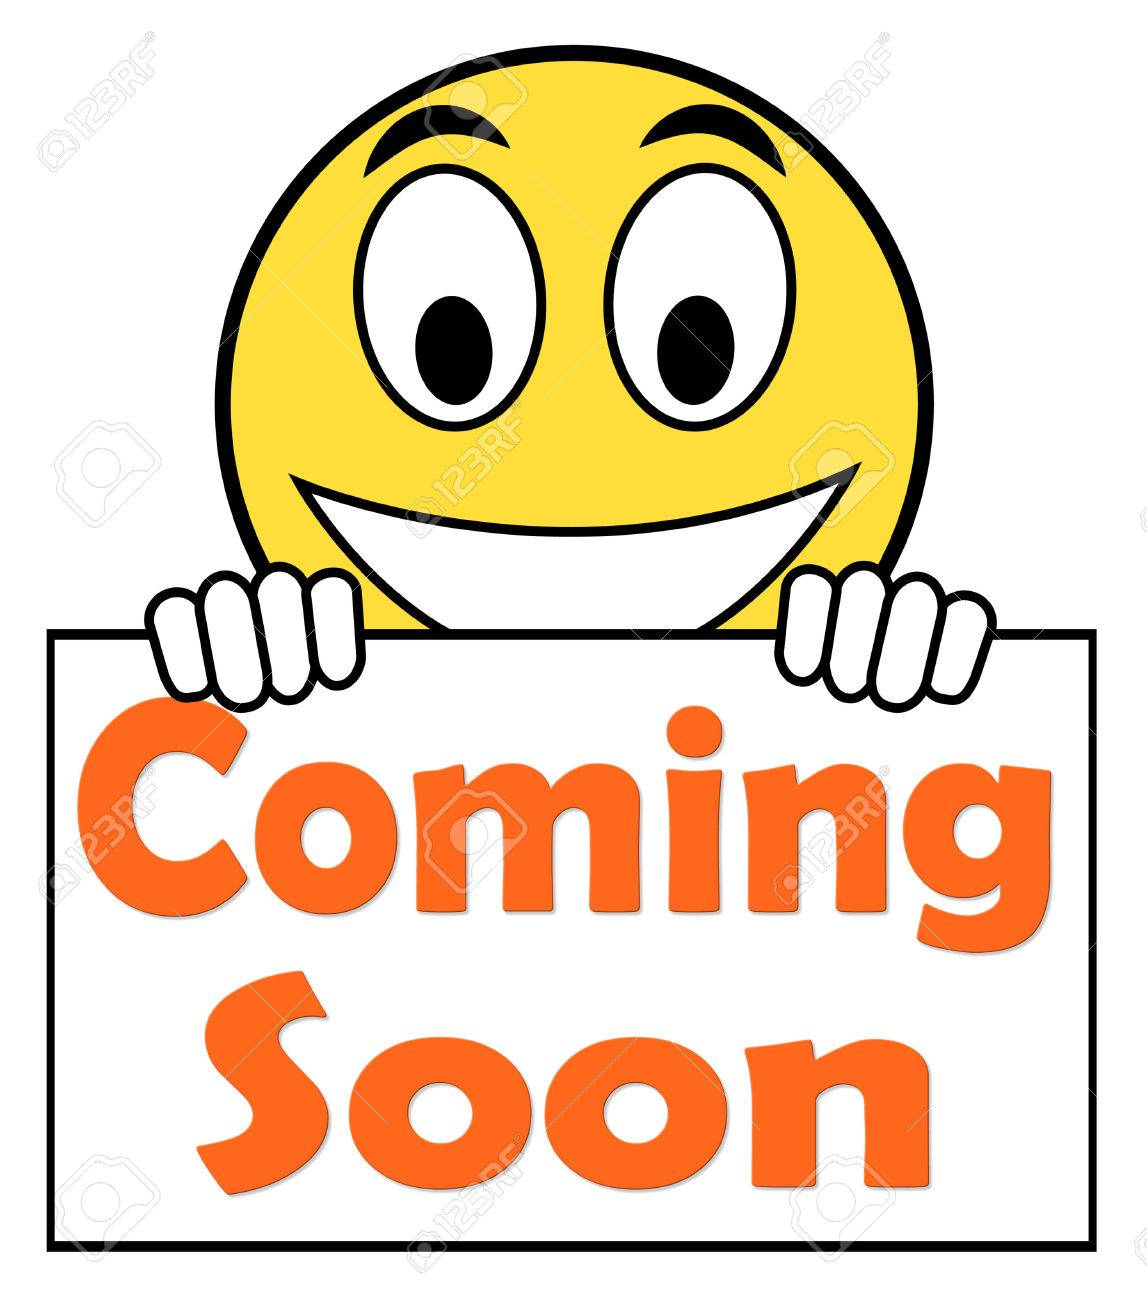 09de8cae344 Coming Soon On Sign Showing Arriving Products Or New Arrivals Stock Photo -  31410793